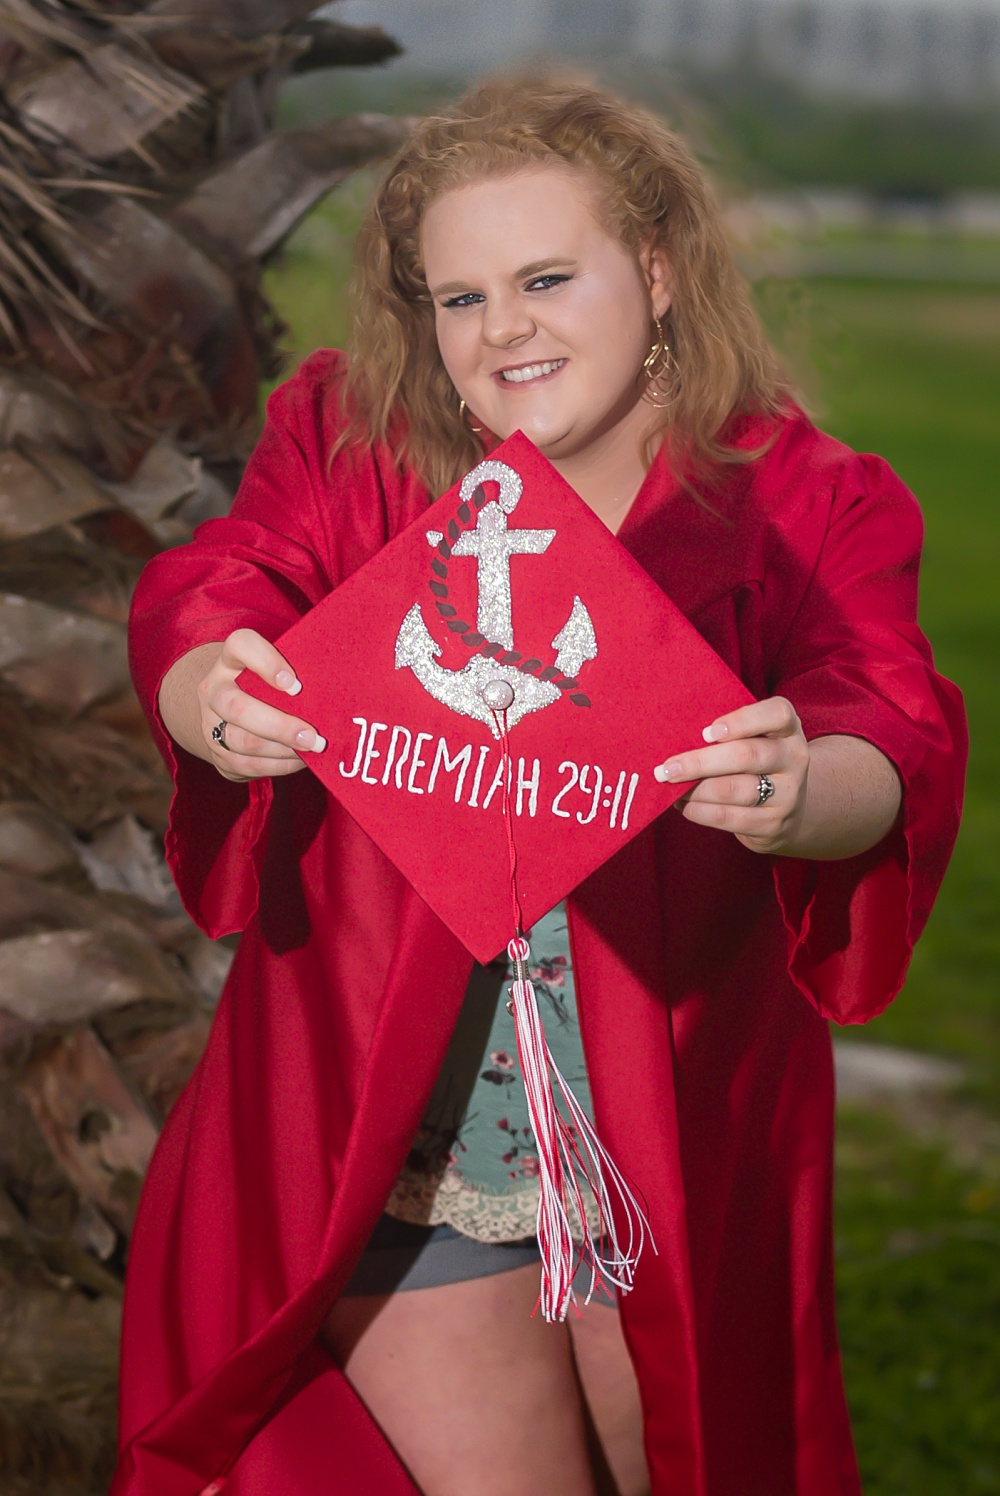 Creations by Jewel_Senior pictures_cap and gown.jpg